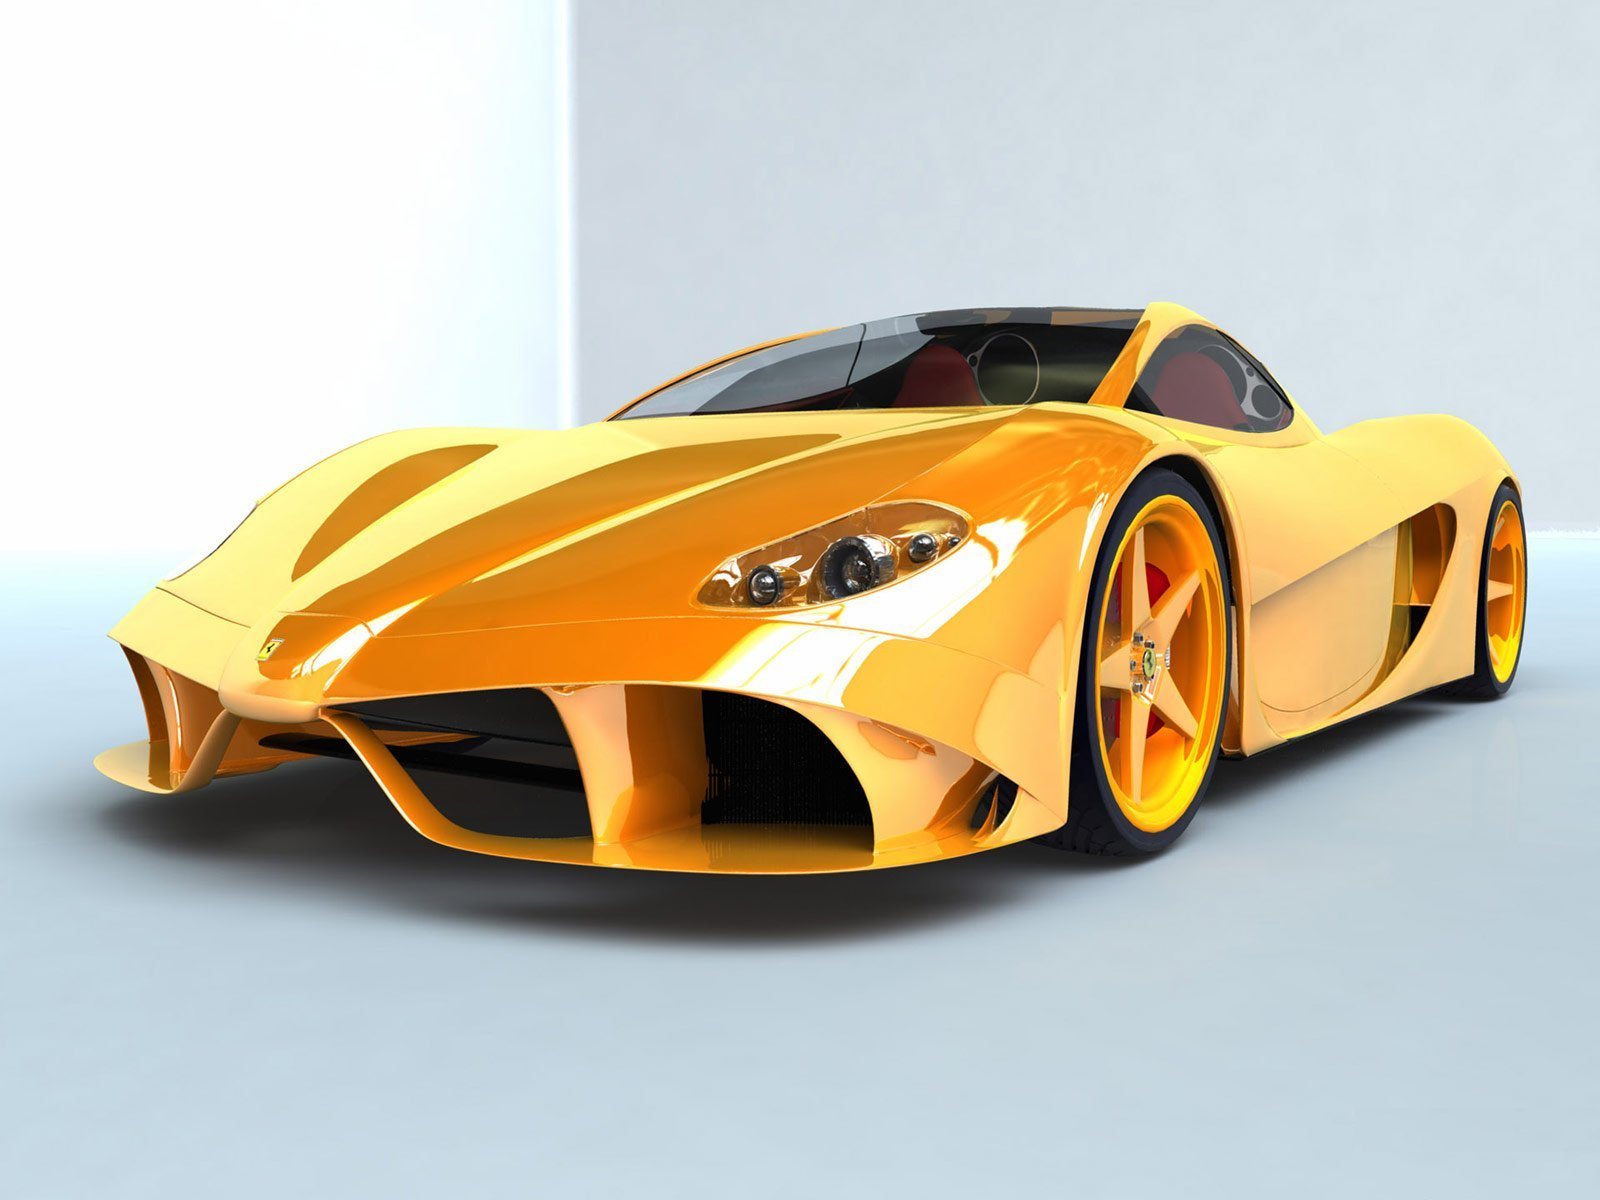 New cool cars wallpapers Online Auto Book 1600x1200